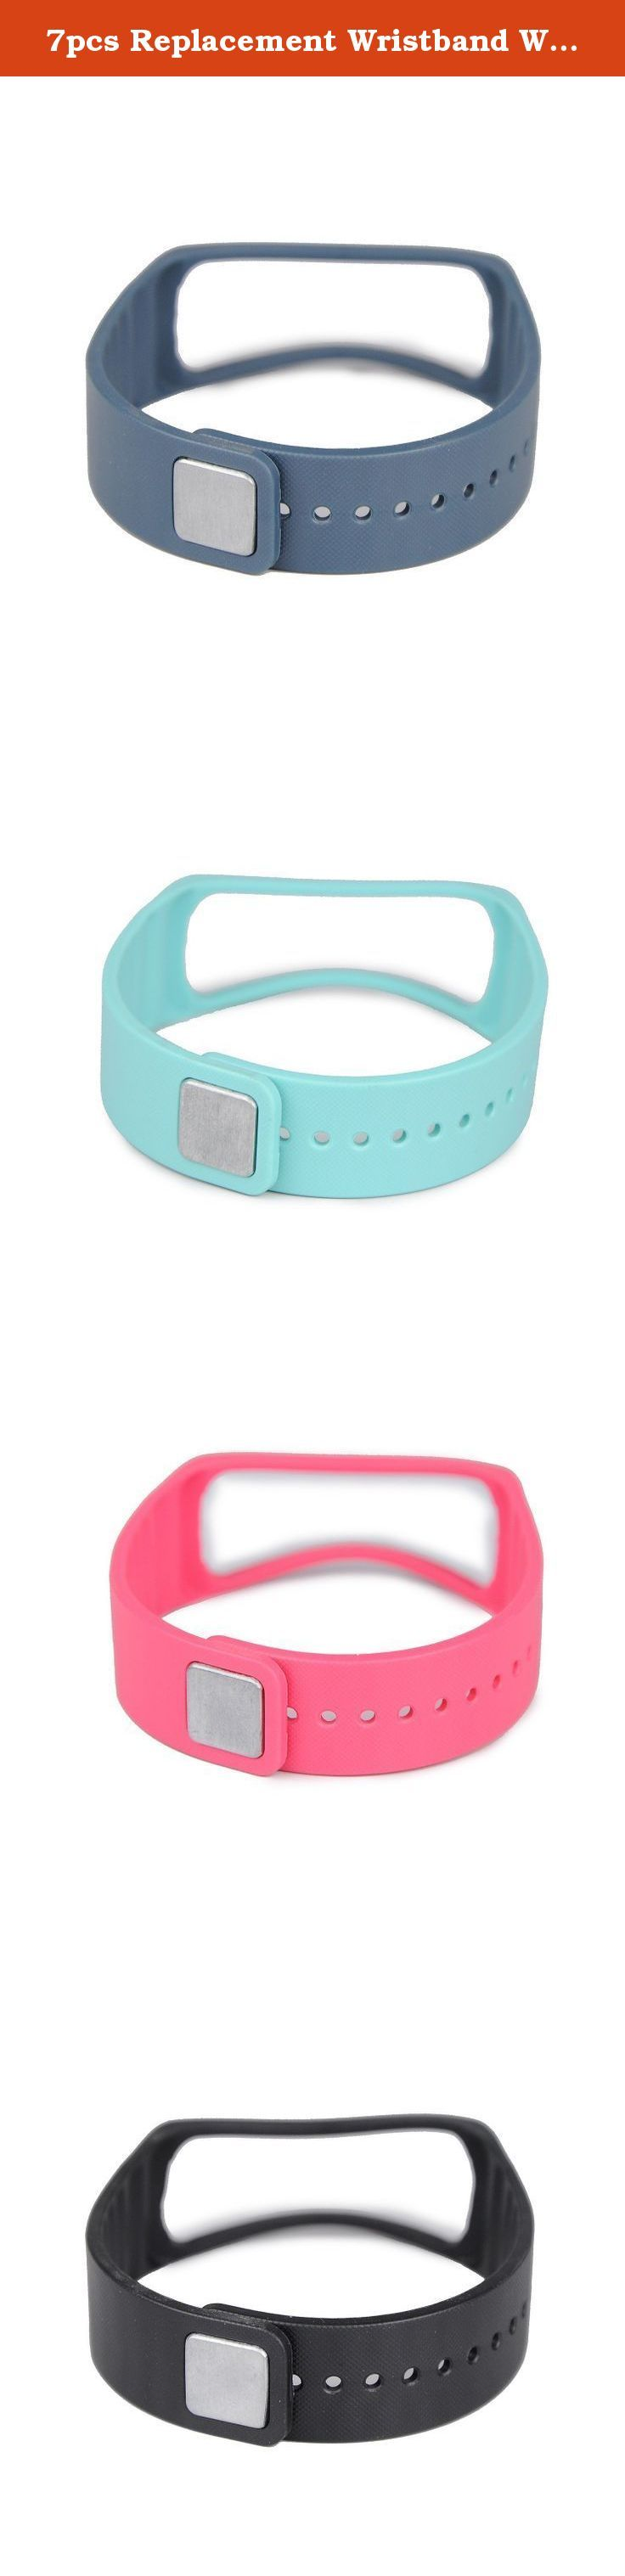 7pcs Replacement Wristband Wrist Band for Samsung Galaxy Gear Fit Bracelet Armband # 7color Band. No Tracker - Rubber Band with Metal Clasp (slate color replacement for samsung band and clasp) FOR Samsung Galaxy Gear Fit ONLY!!! Not for other models!!! Comfortable for sporting time,Look good no matter what you are wearing Personalize your wristband to match your daily style with this brand new color choices Free size wristband accessory ,Replacement for lost or damaged Bands .